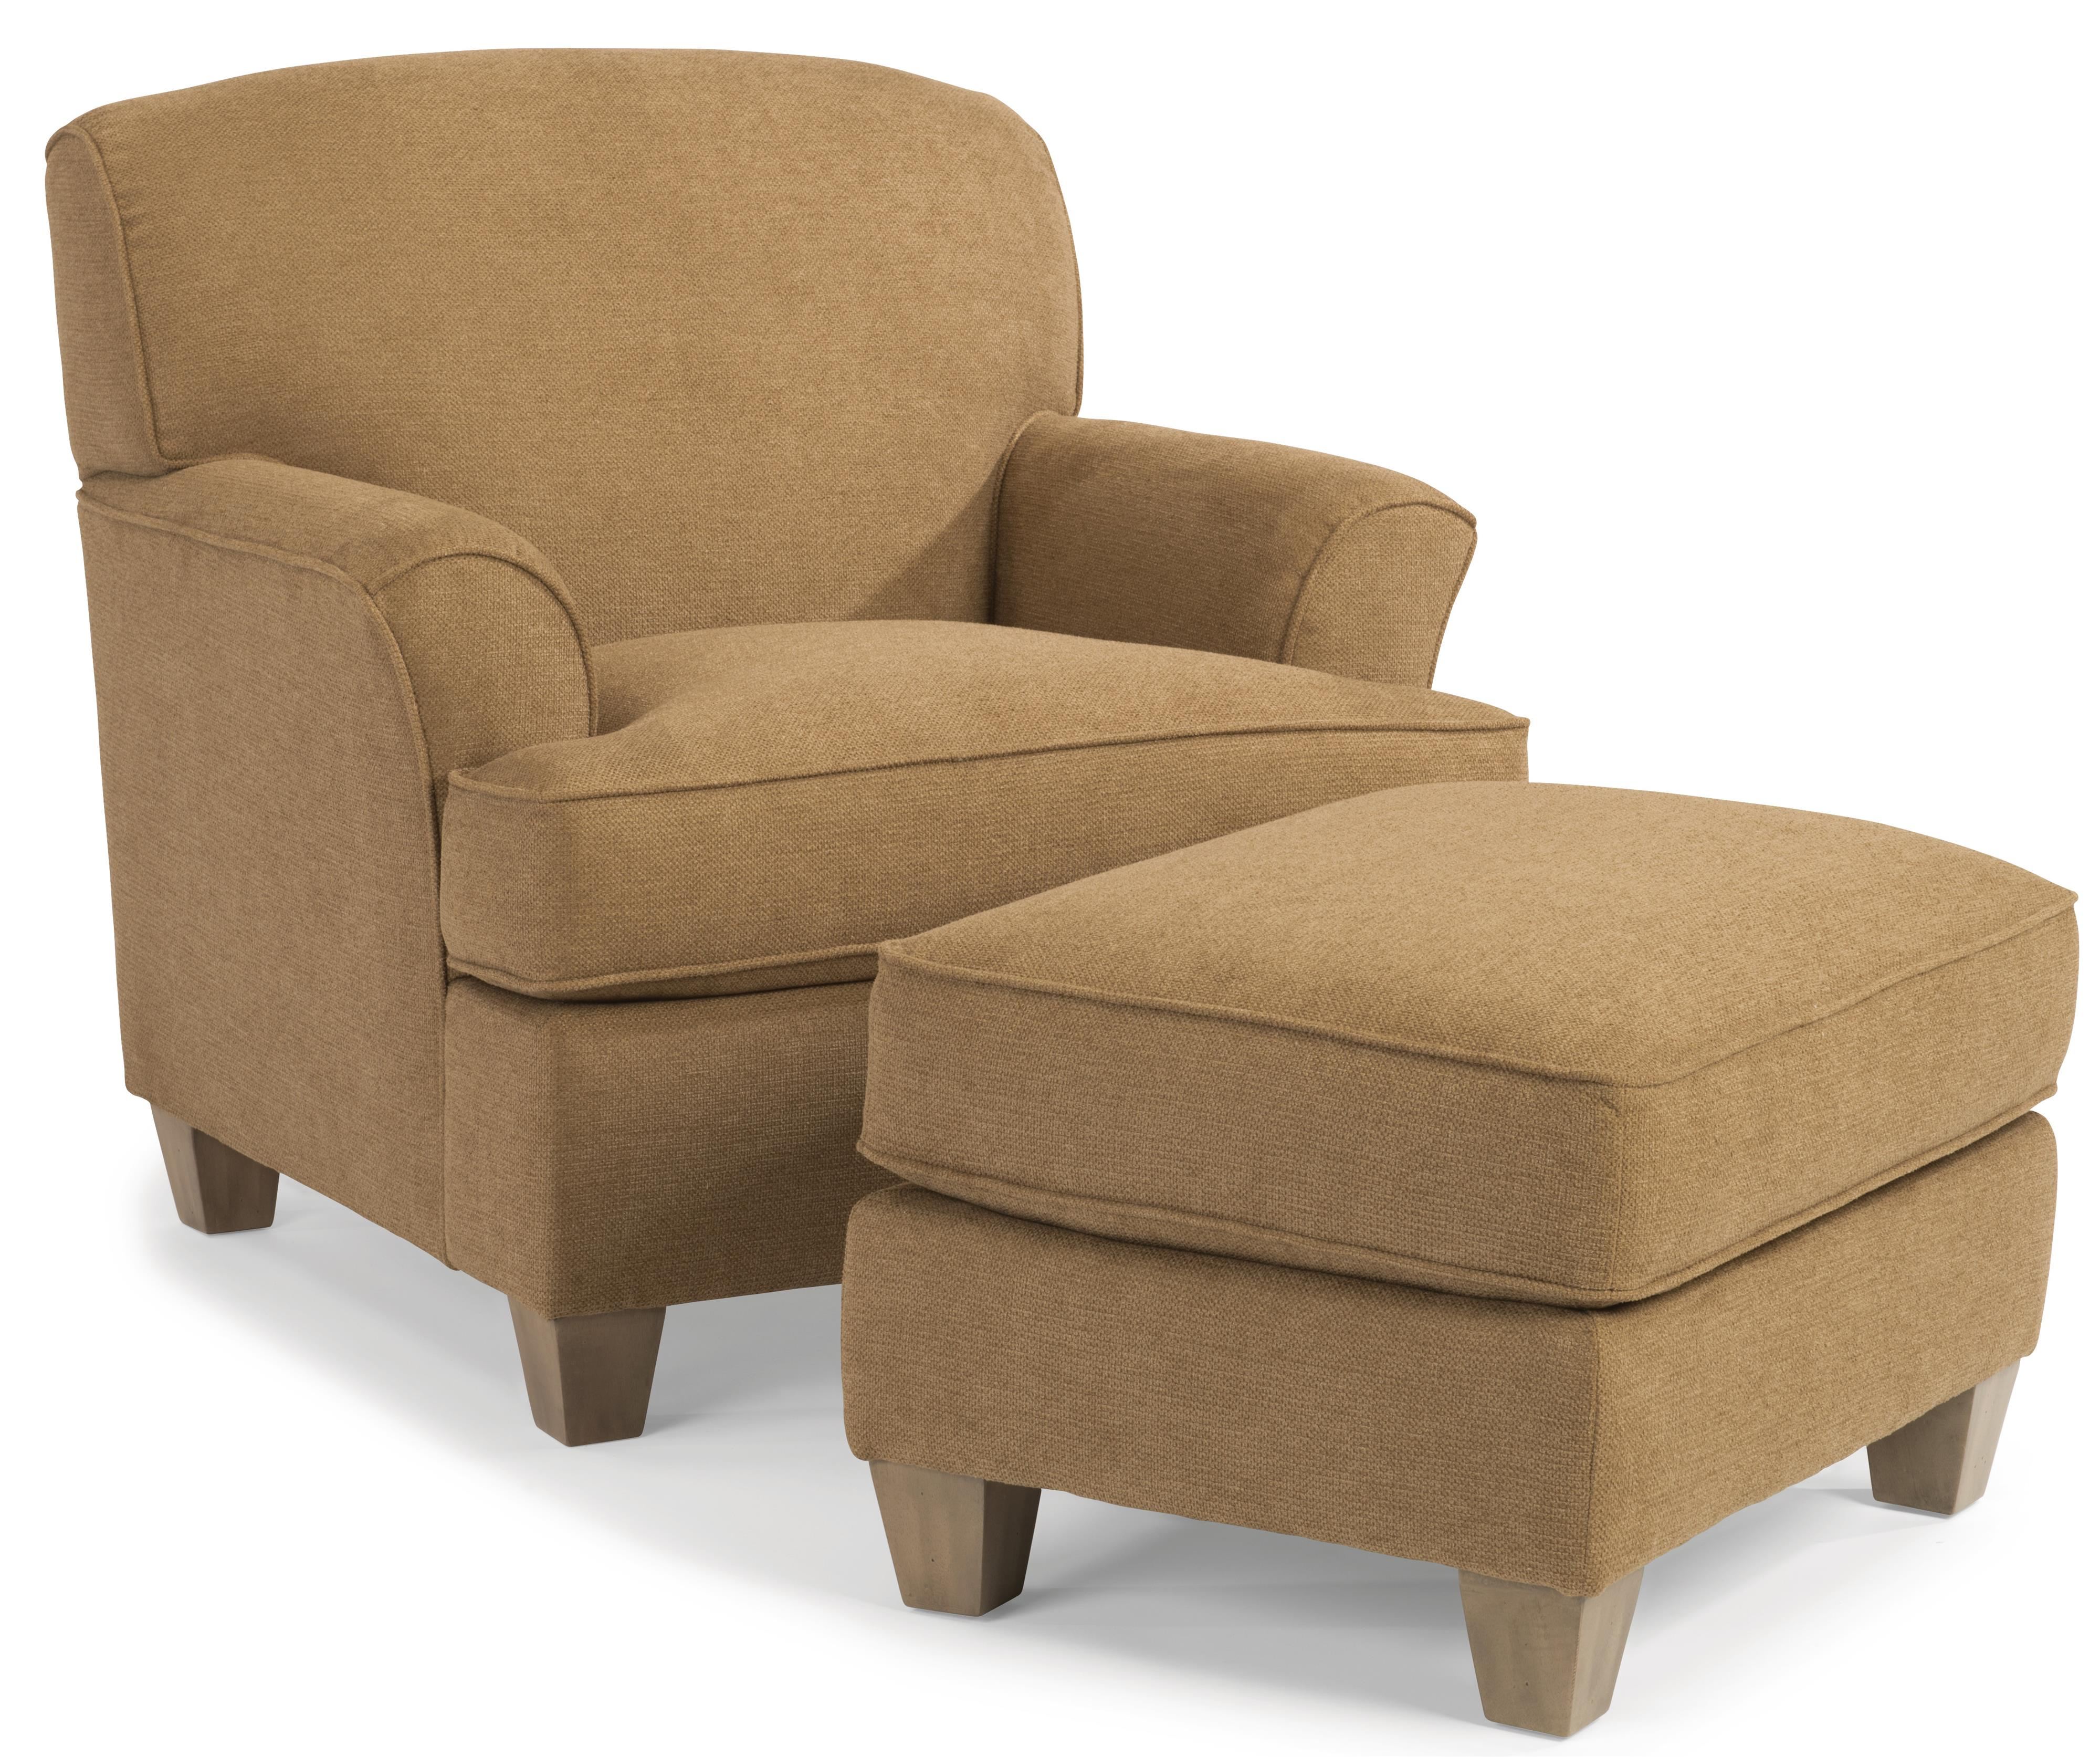 Atlantis Chair and Ottoman by Flexsteel at Jordan's Home Furnishings